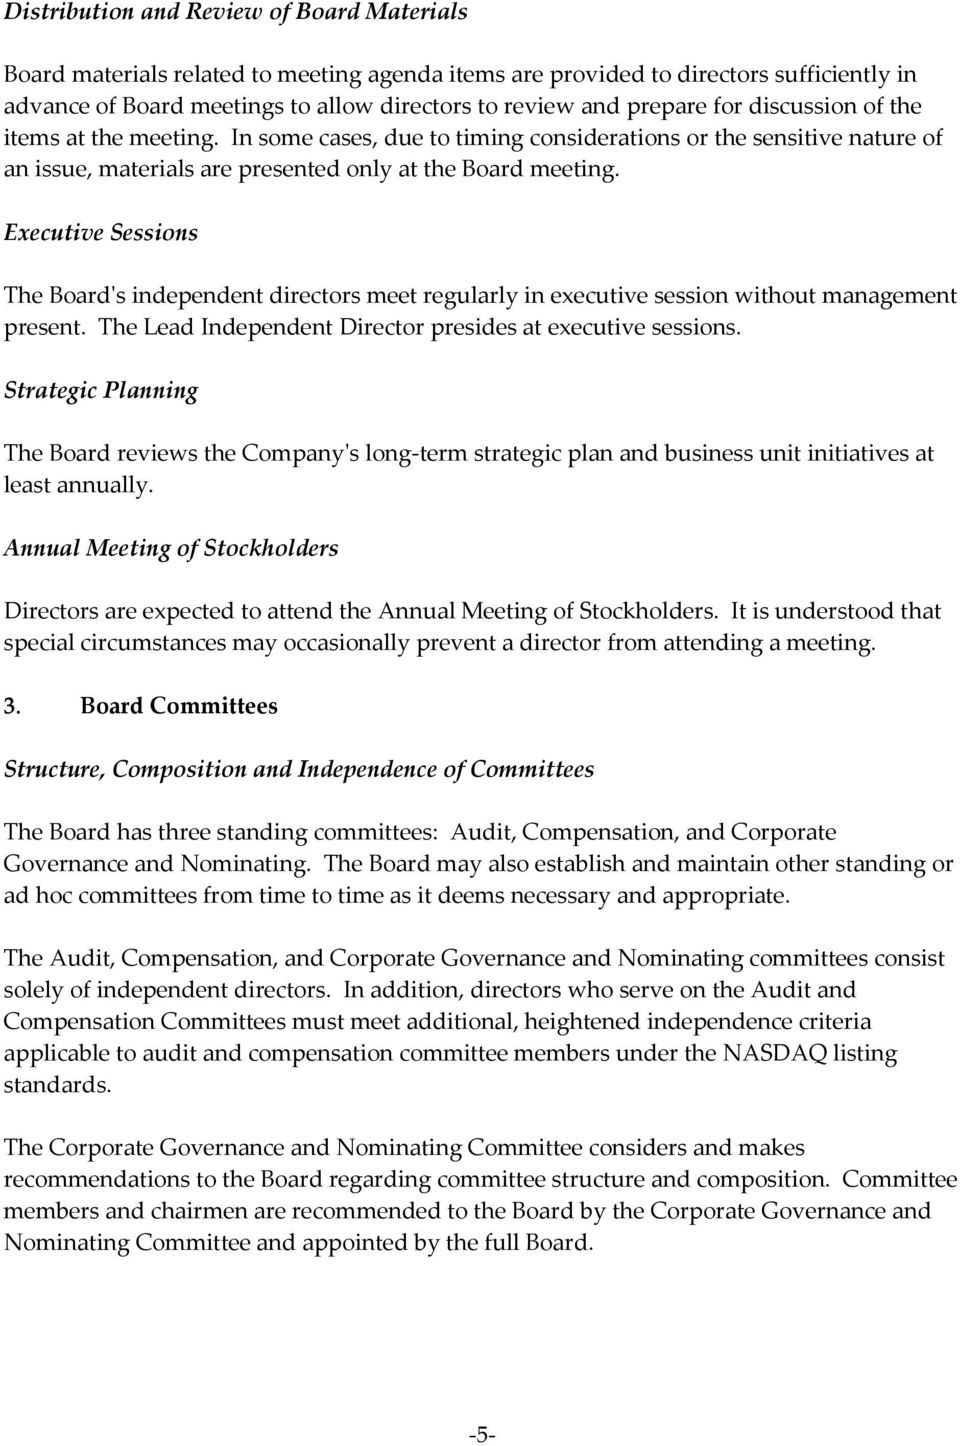 Executive Sessions The Board's independent directors meet regularly in executive session without management present. The Lead Independent Director presides at executive sessions.